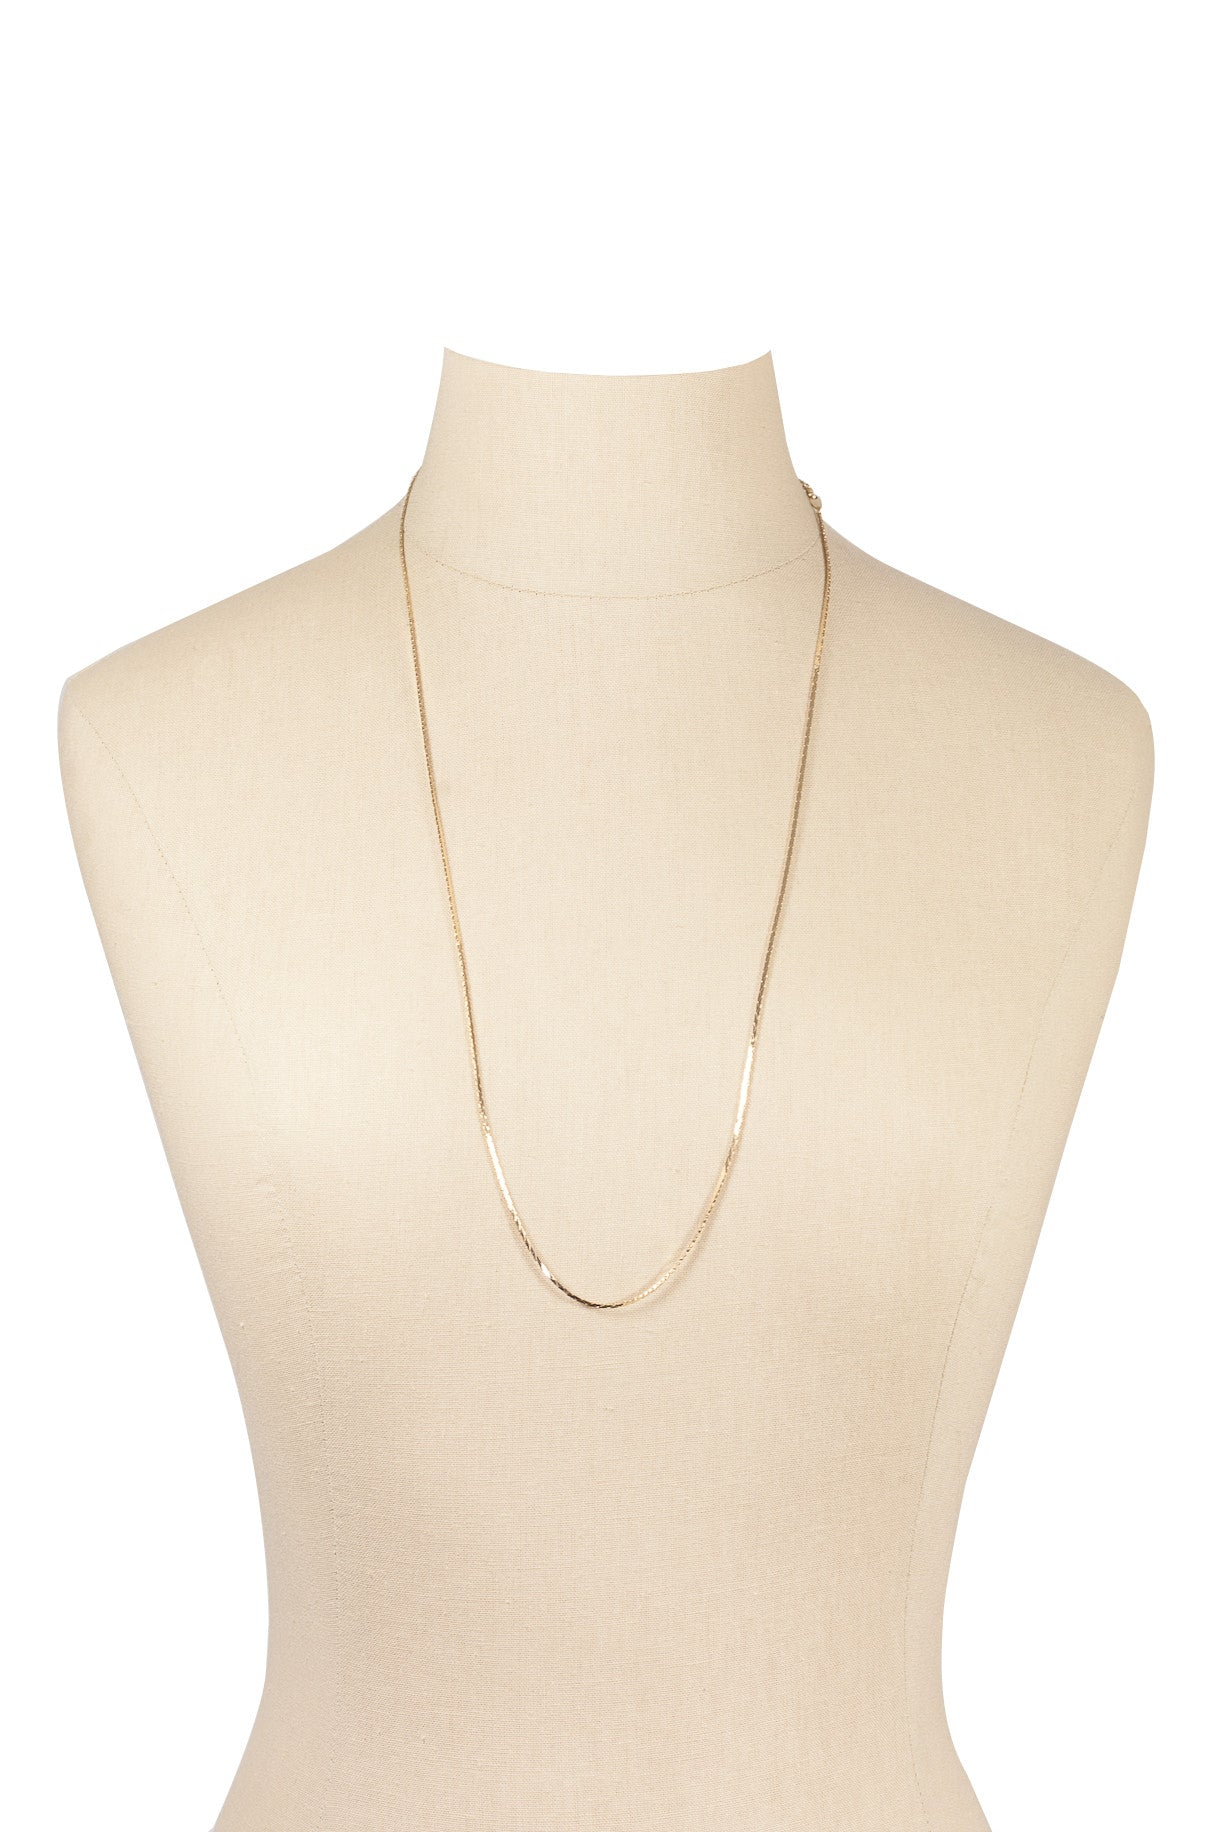 80's__Trifari__Dainty Herringbone Necklace